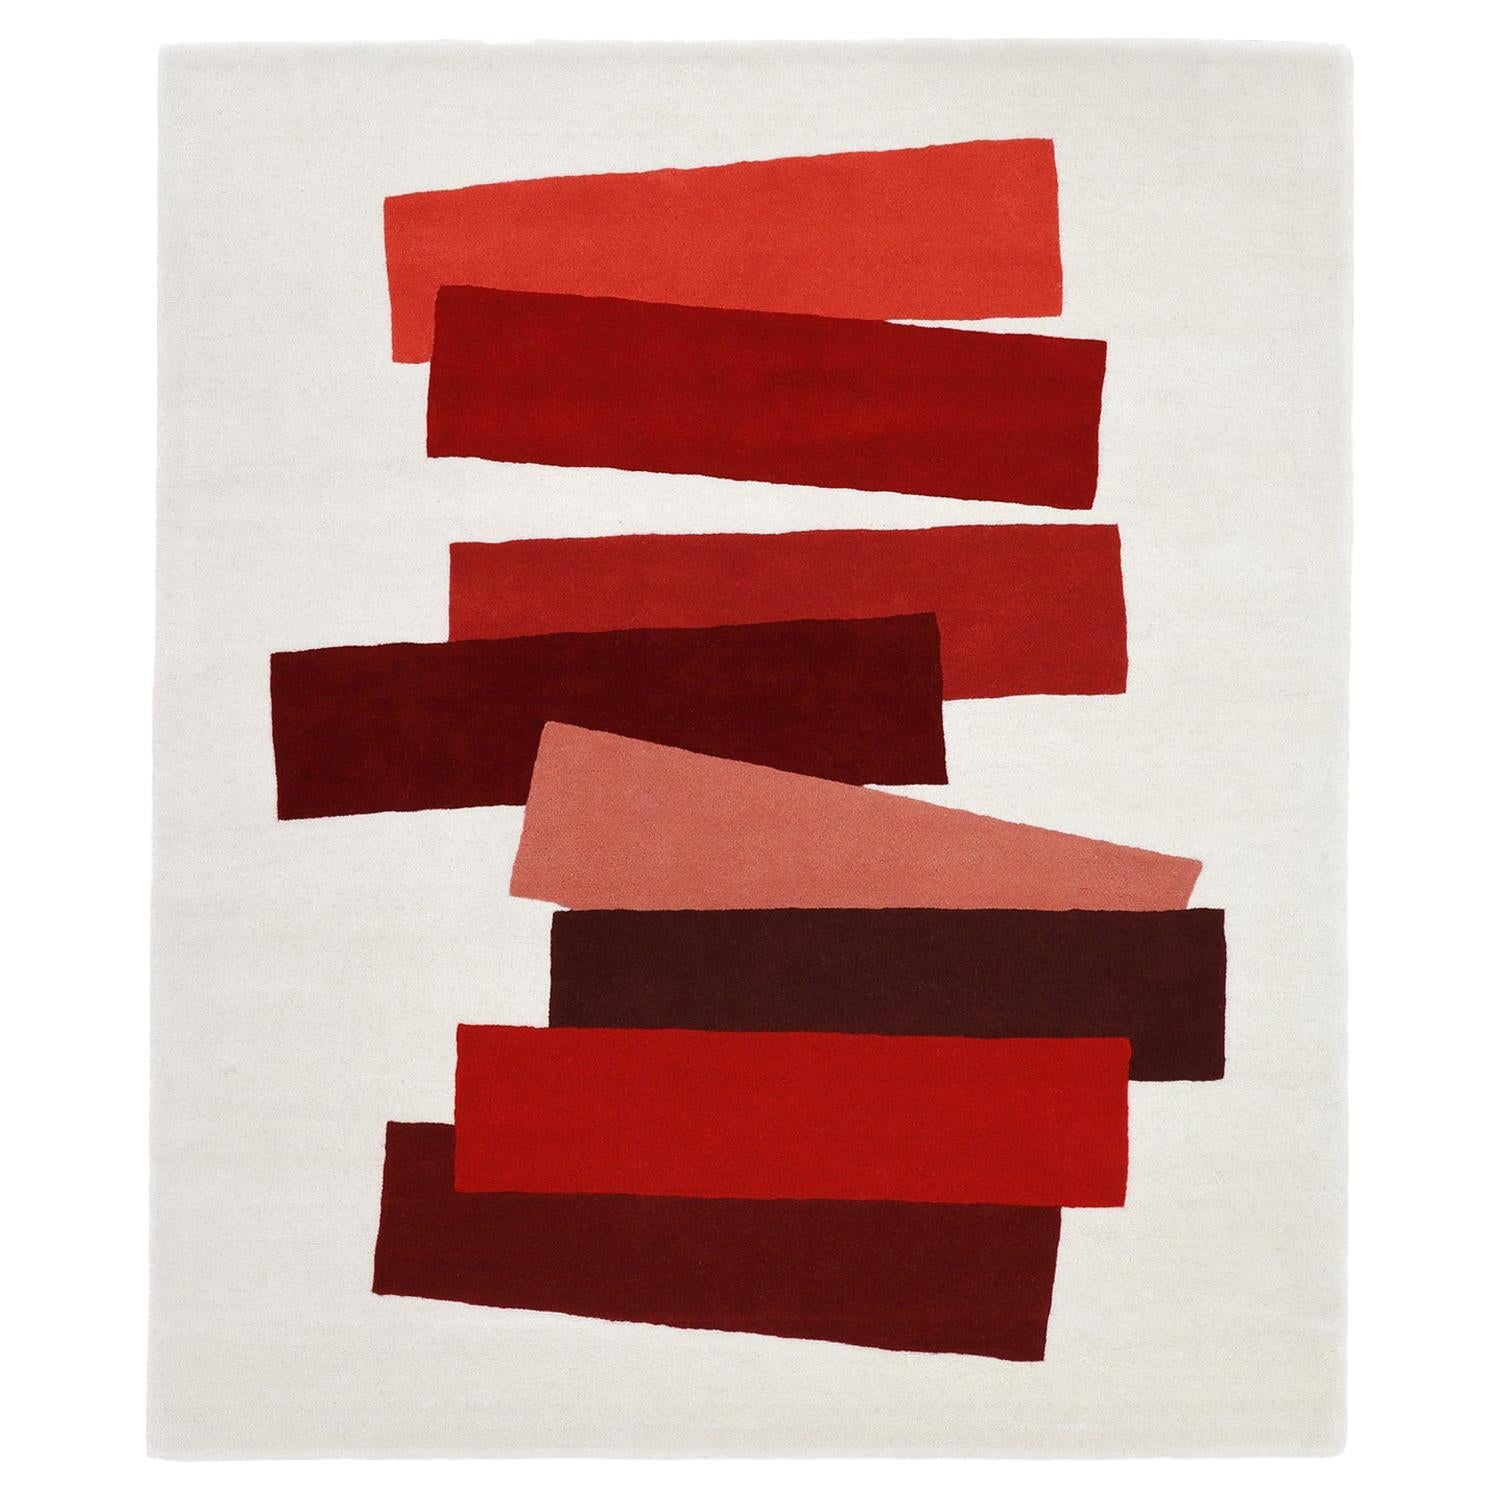 The Many Faces of Red 'Rug' After Josef Albers